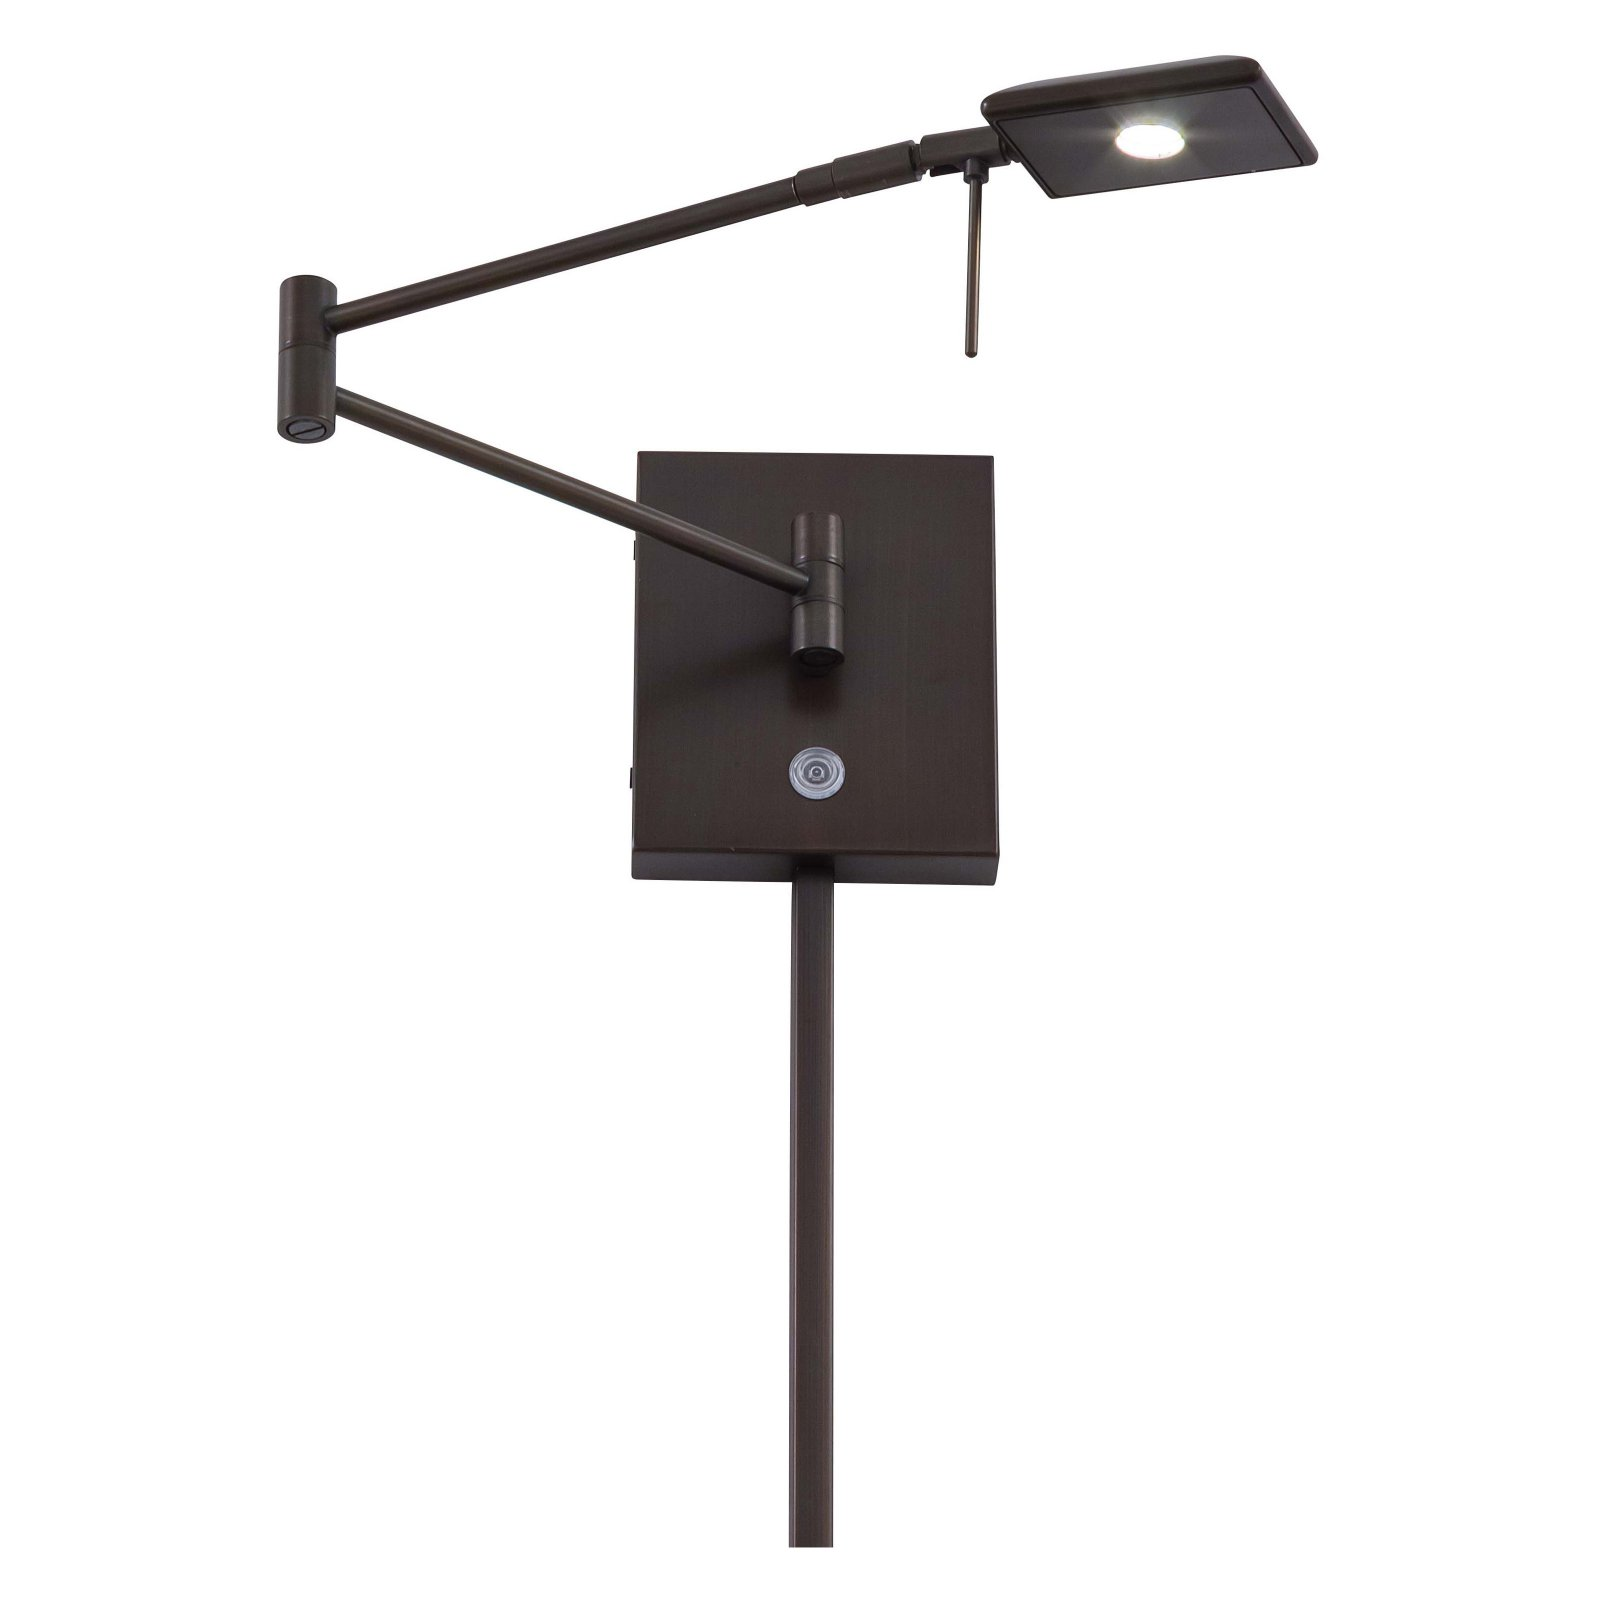 George Kovacs 1-Light LED Swing Arm Wall Lamp 13.75W in. Copper Bronze Patina by George Kovacs